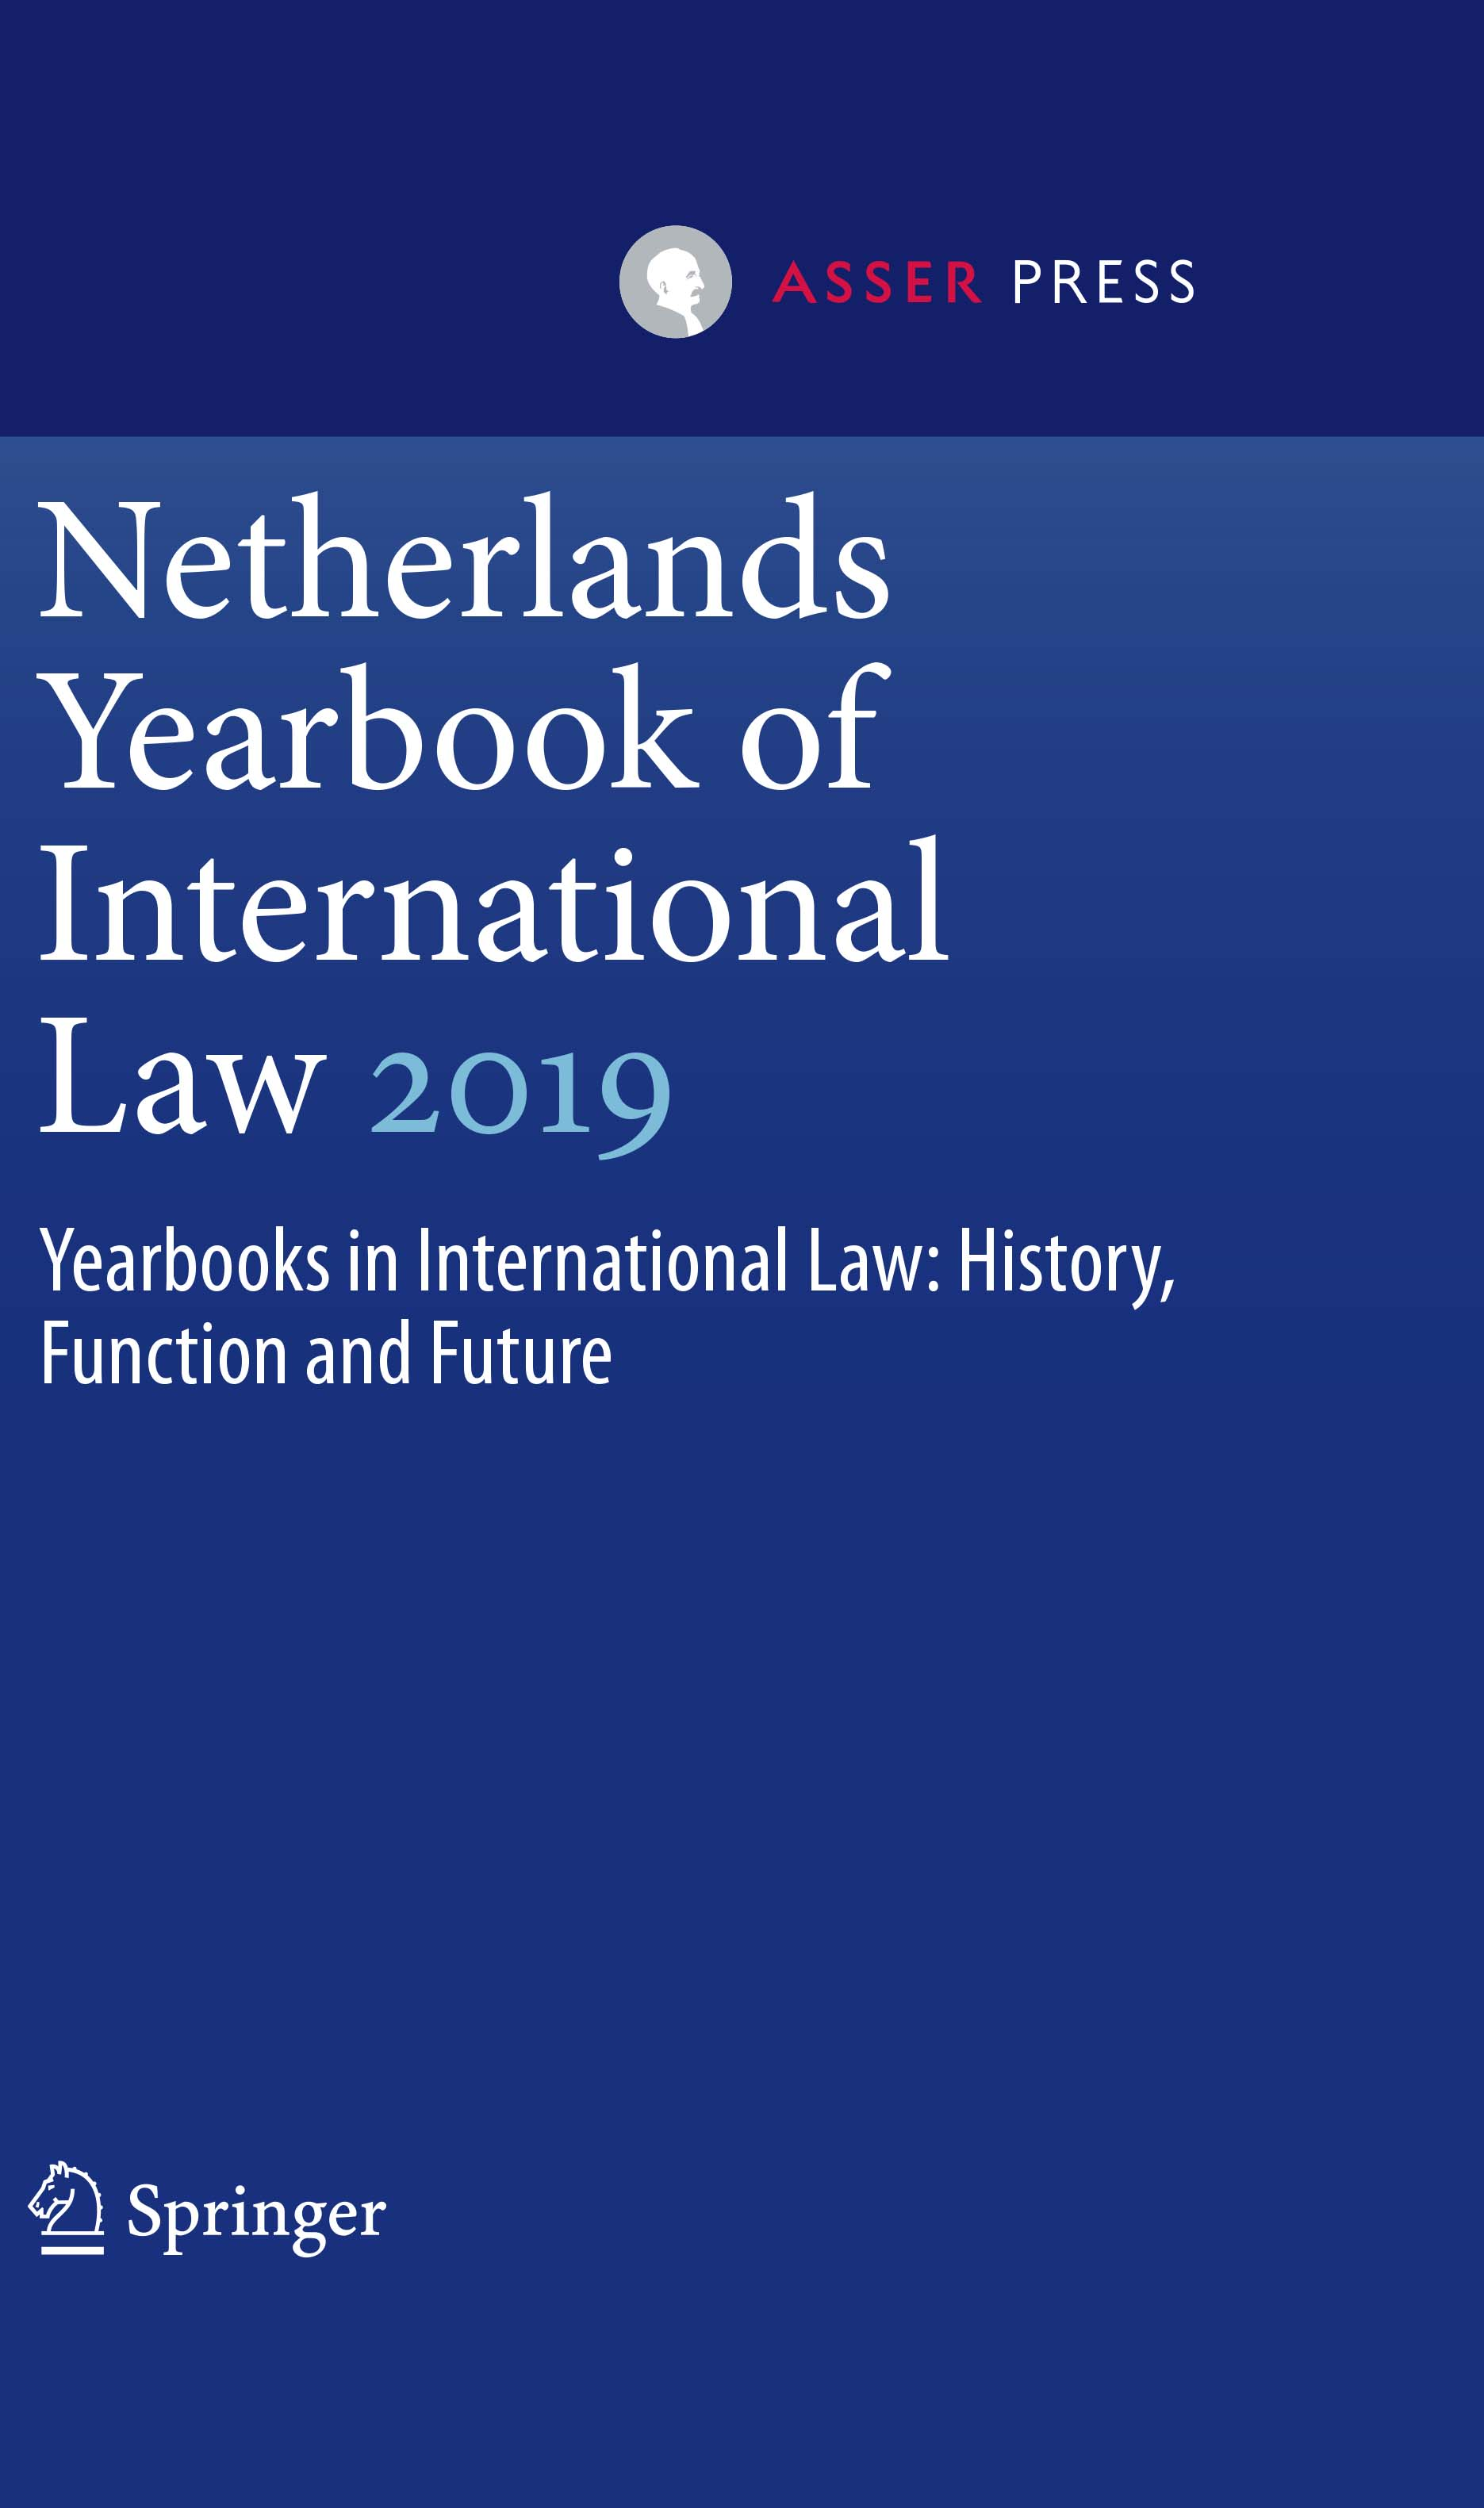 Netherlands Yearbook of International Law 2019 - Yearbooks in International Law: History, Function and Future (50th Volume)